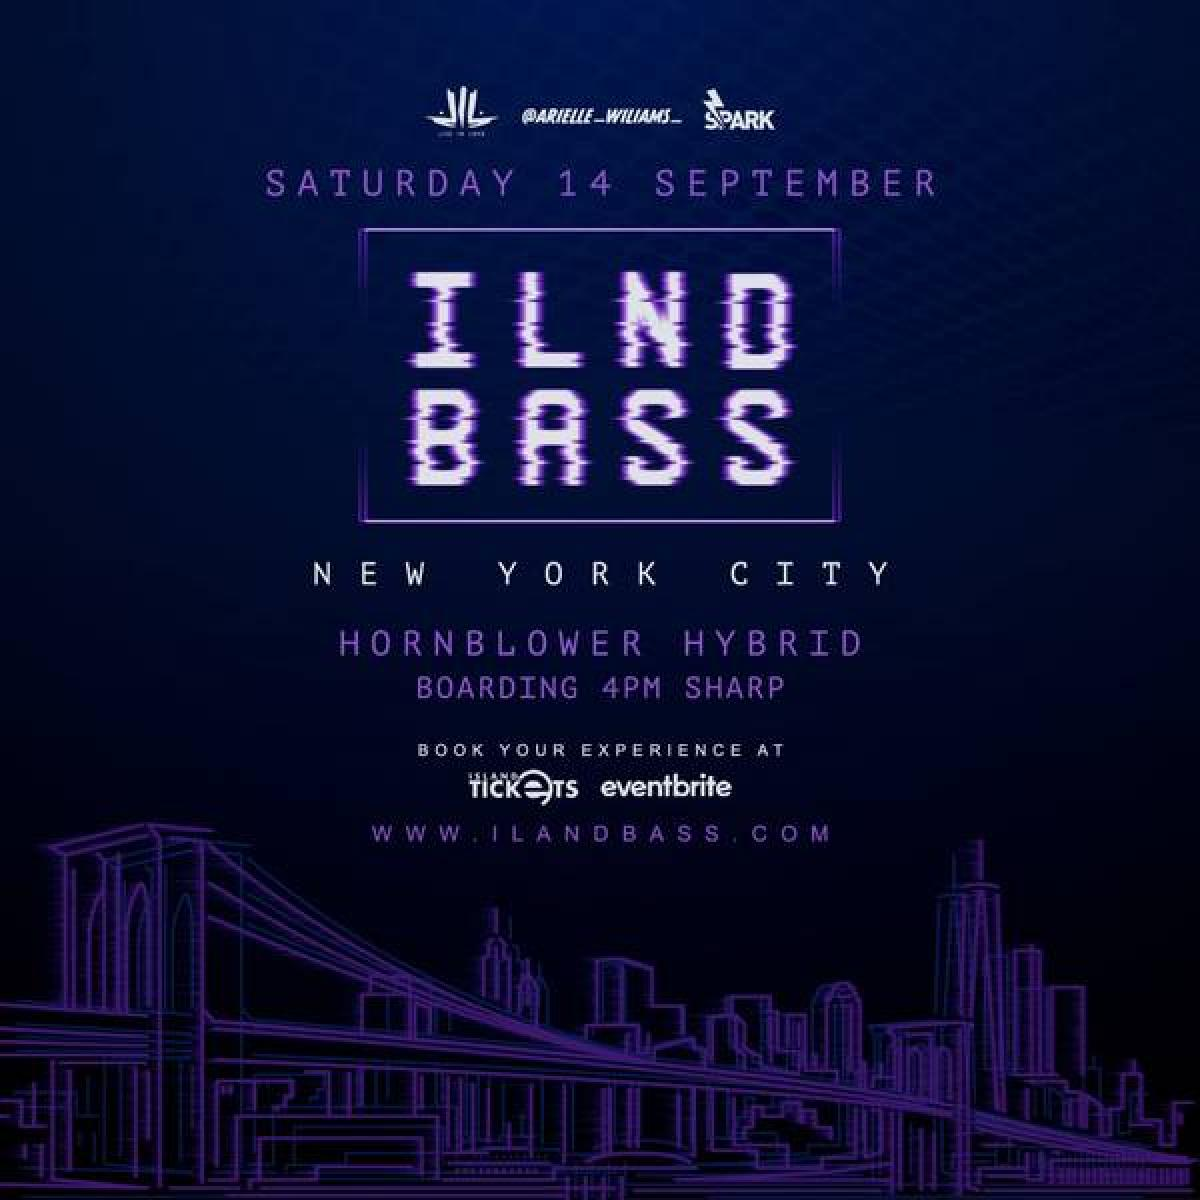 Ilnd Bass flyer or graphic.